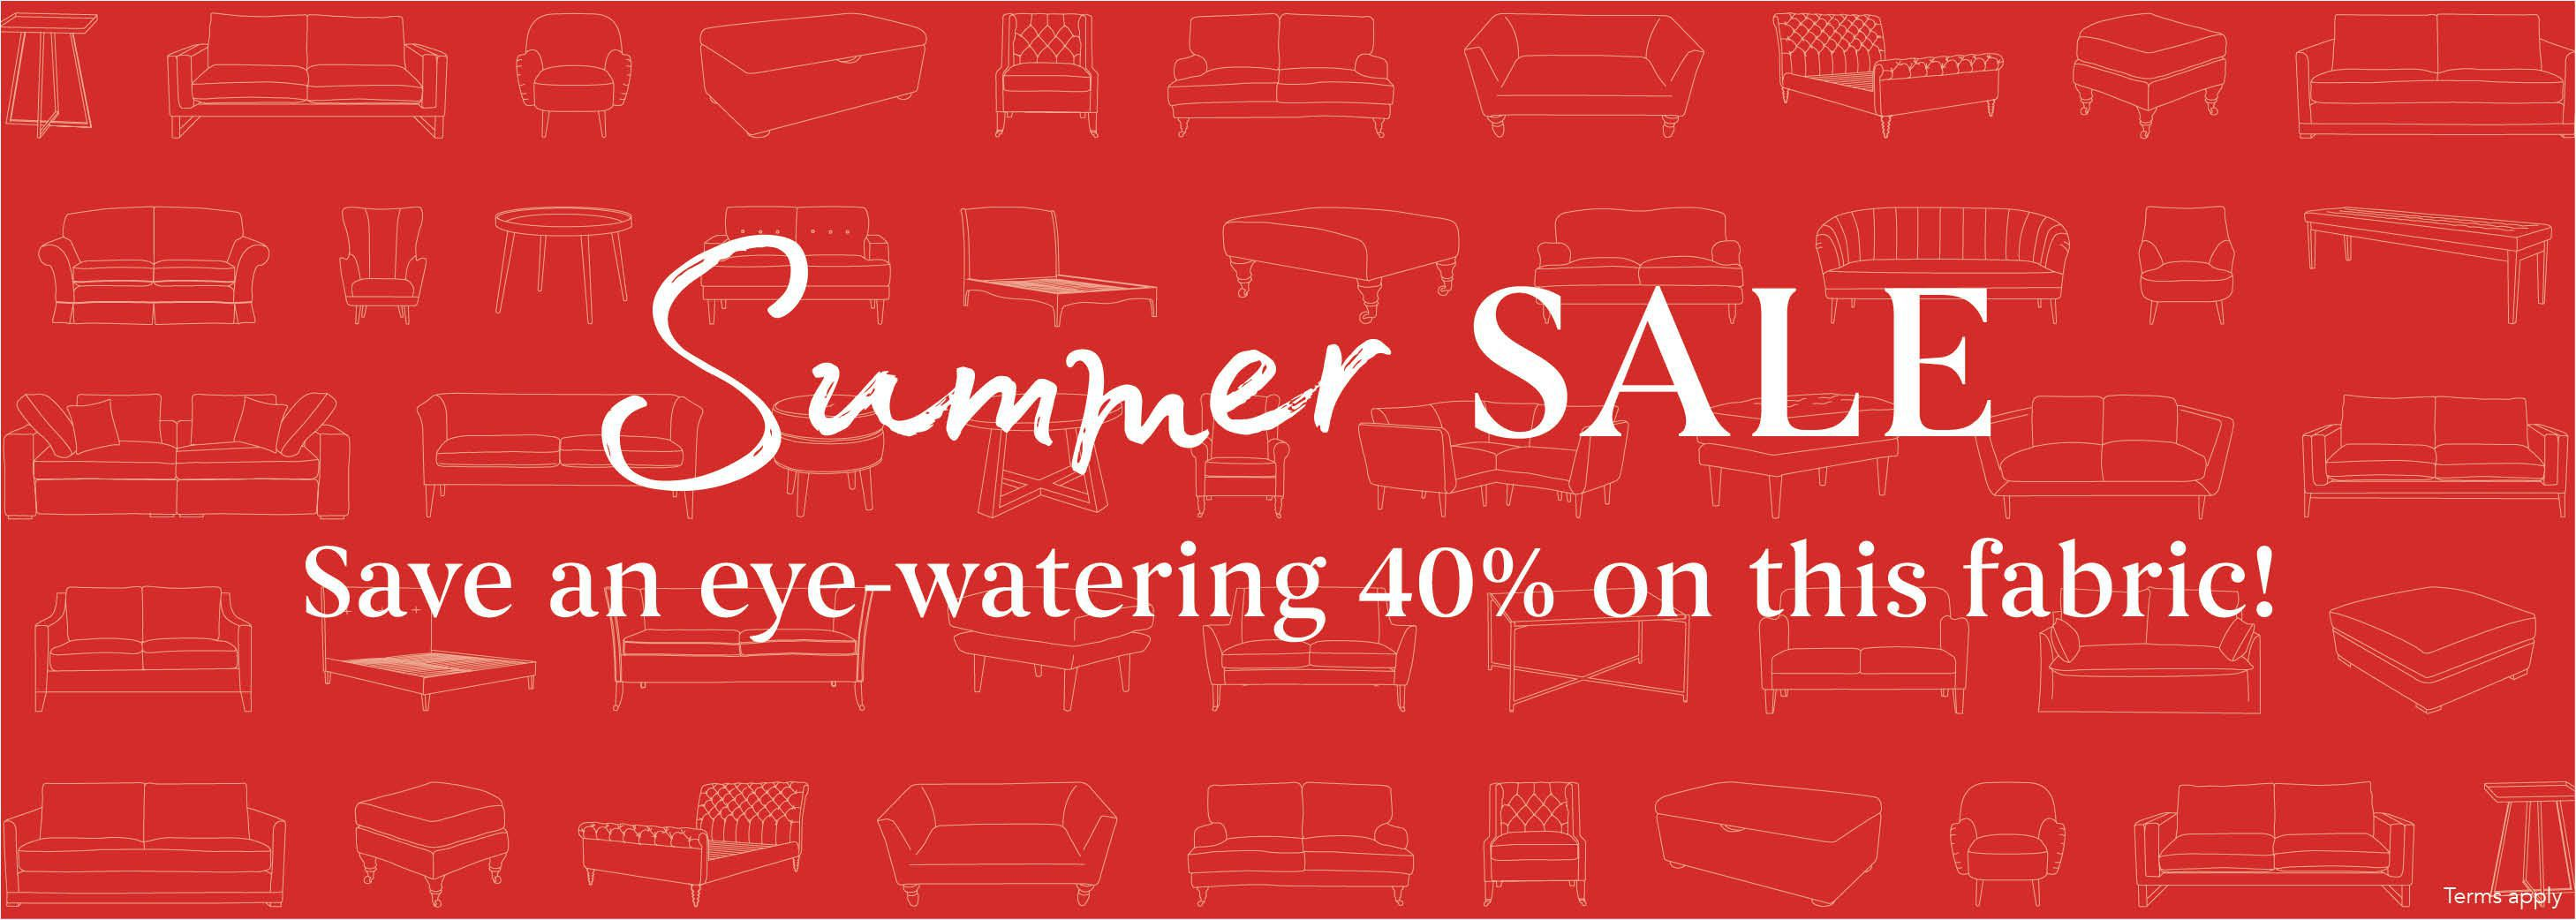 SummerSale_Category Banner-June20-40pc.jpg